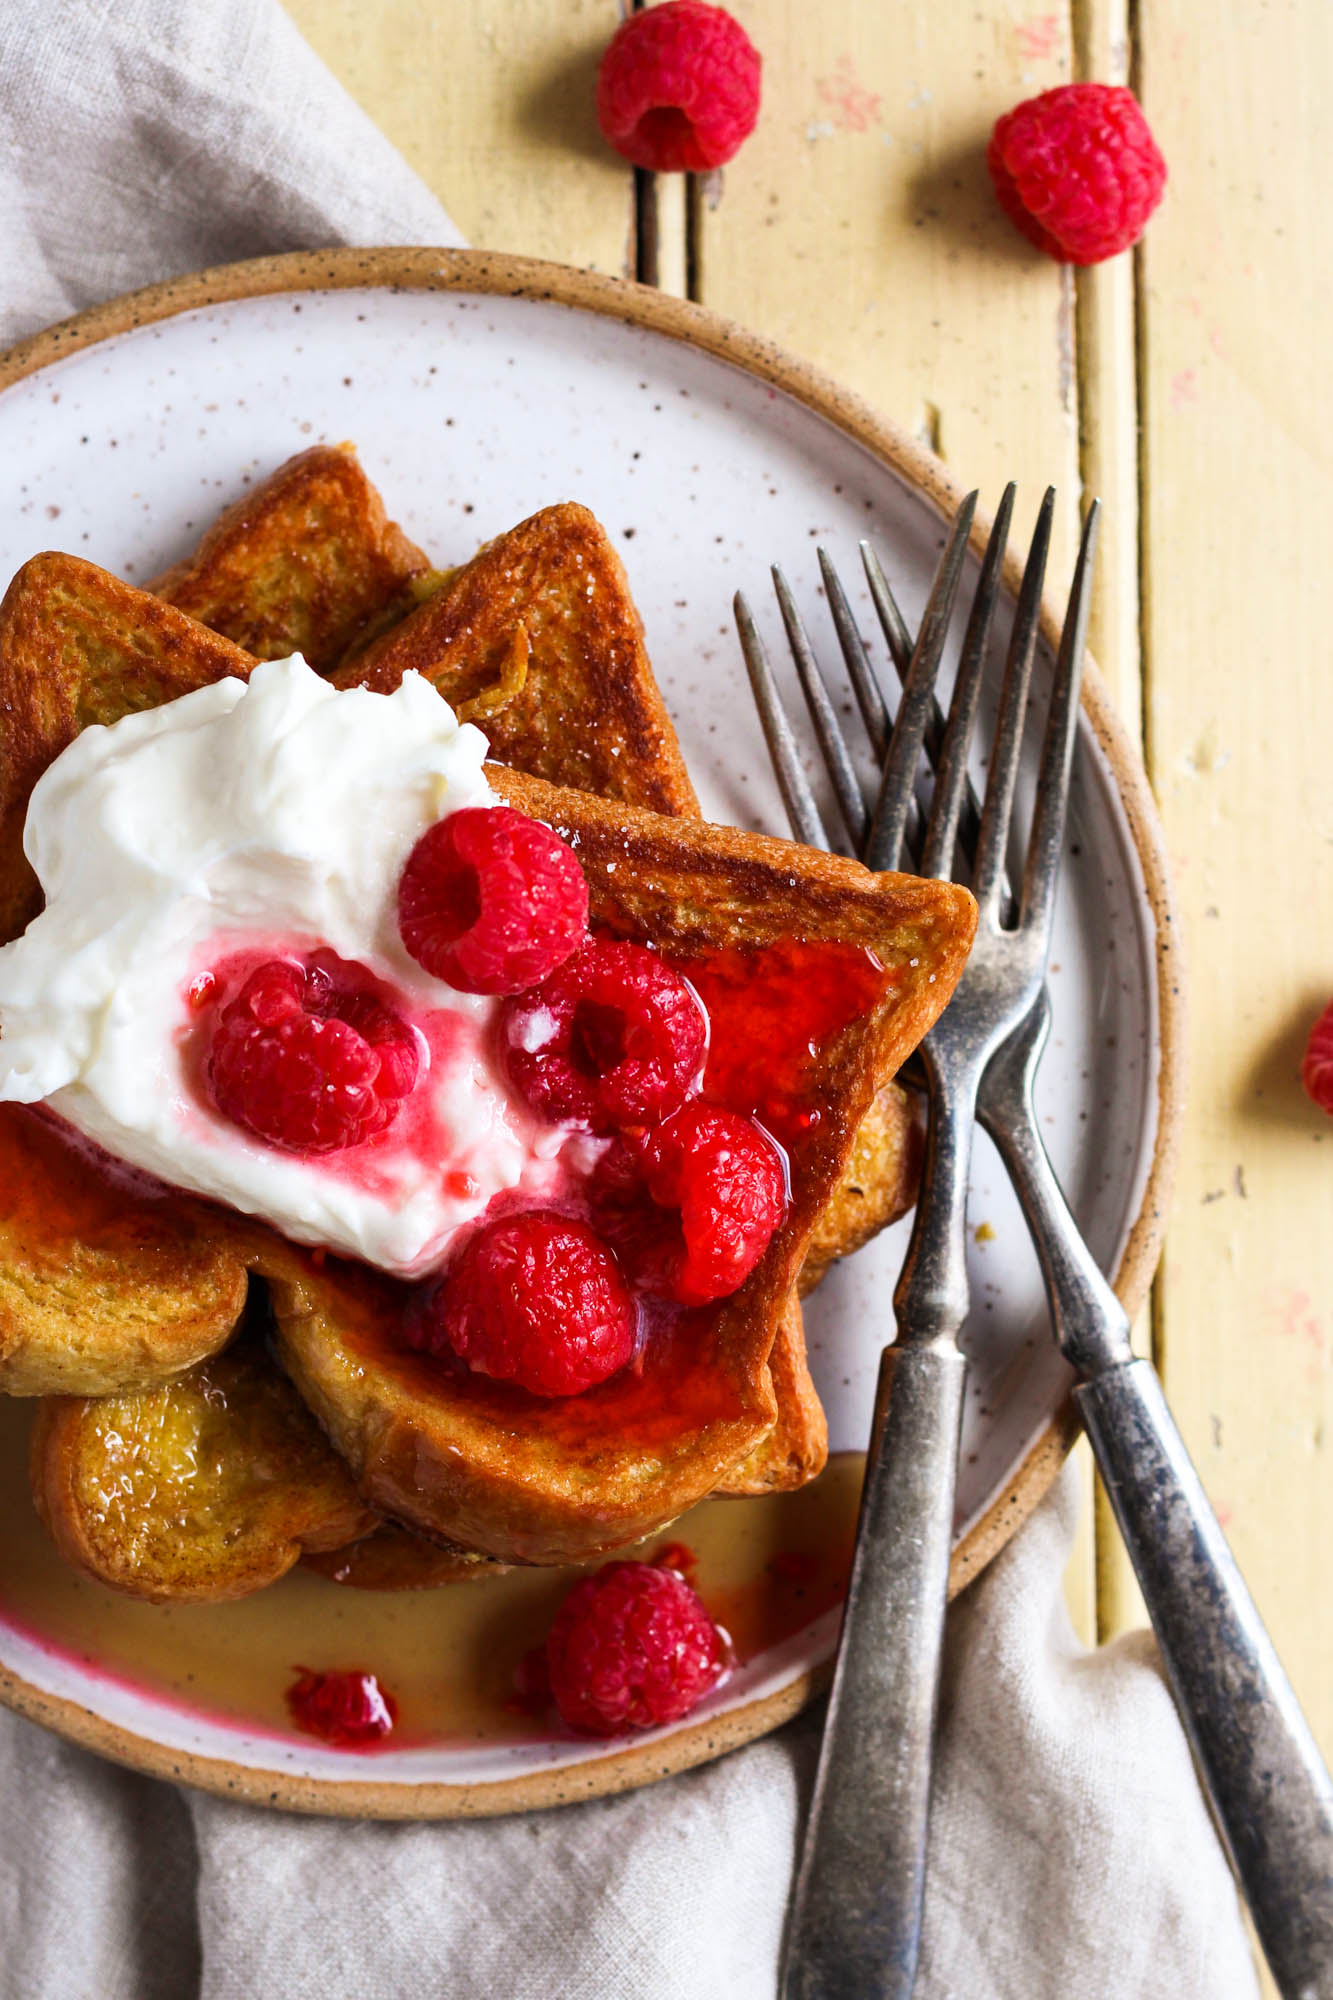 Top view of cinnamon french toast with rapsberries and lemon whipped cream